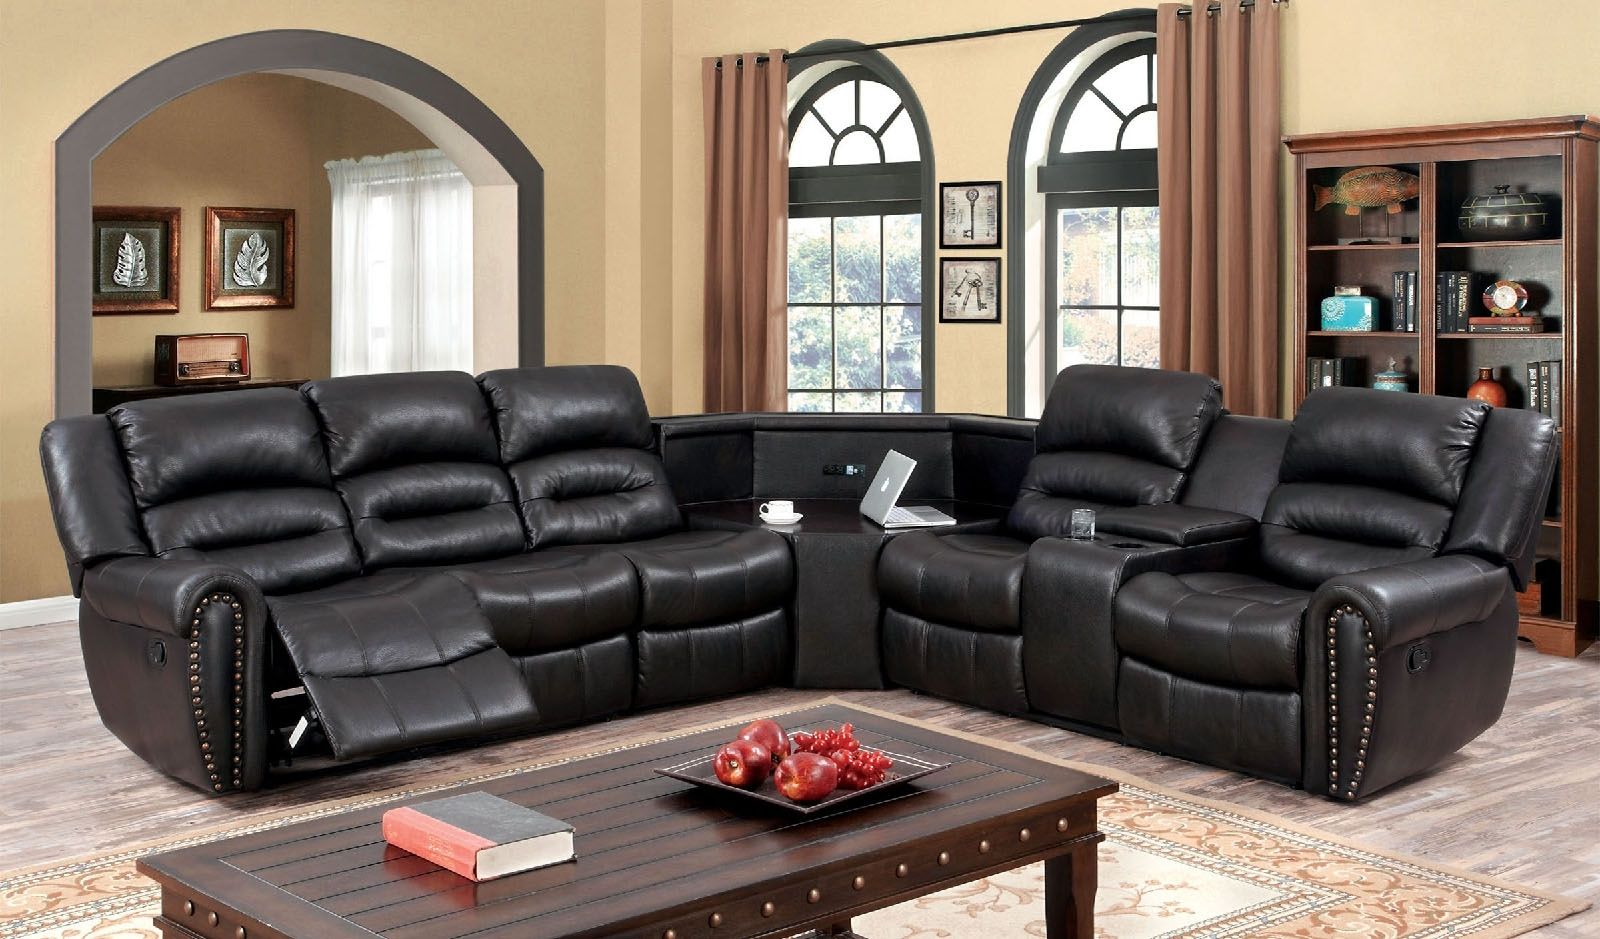 Sofa : Best Power Reclining Sectional Sofas Modern Reclining For Most Popular Sectional Sofas With Cup Holders (View 2 of 20)